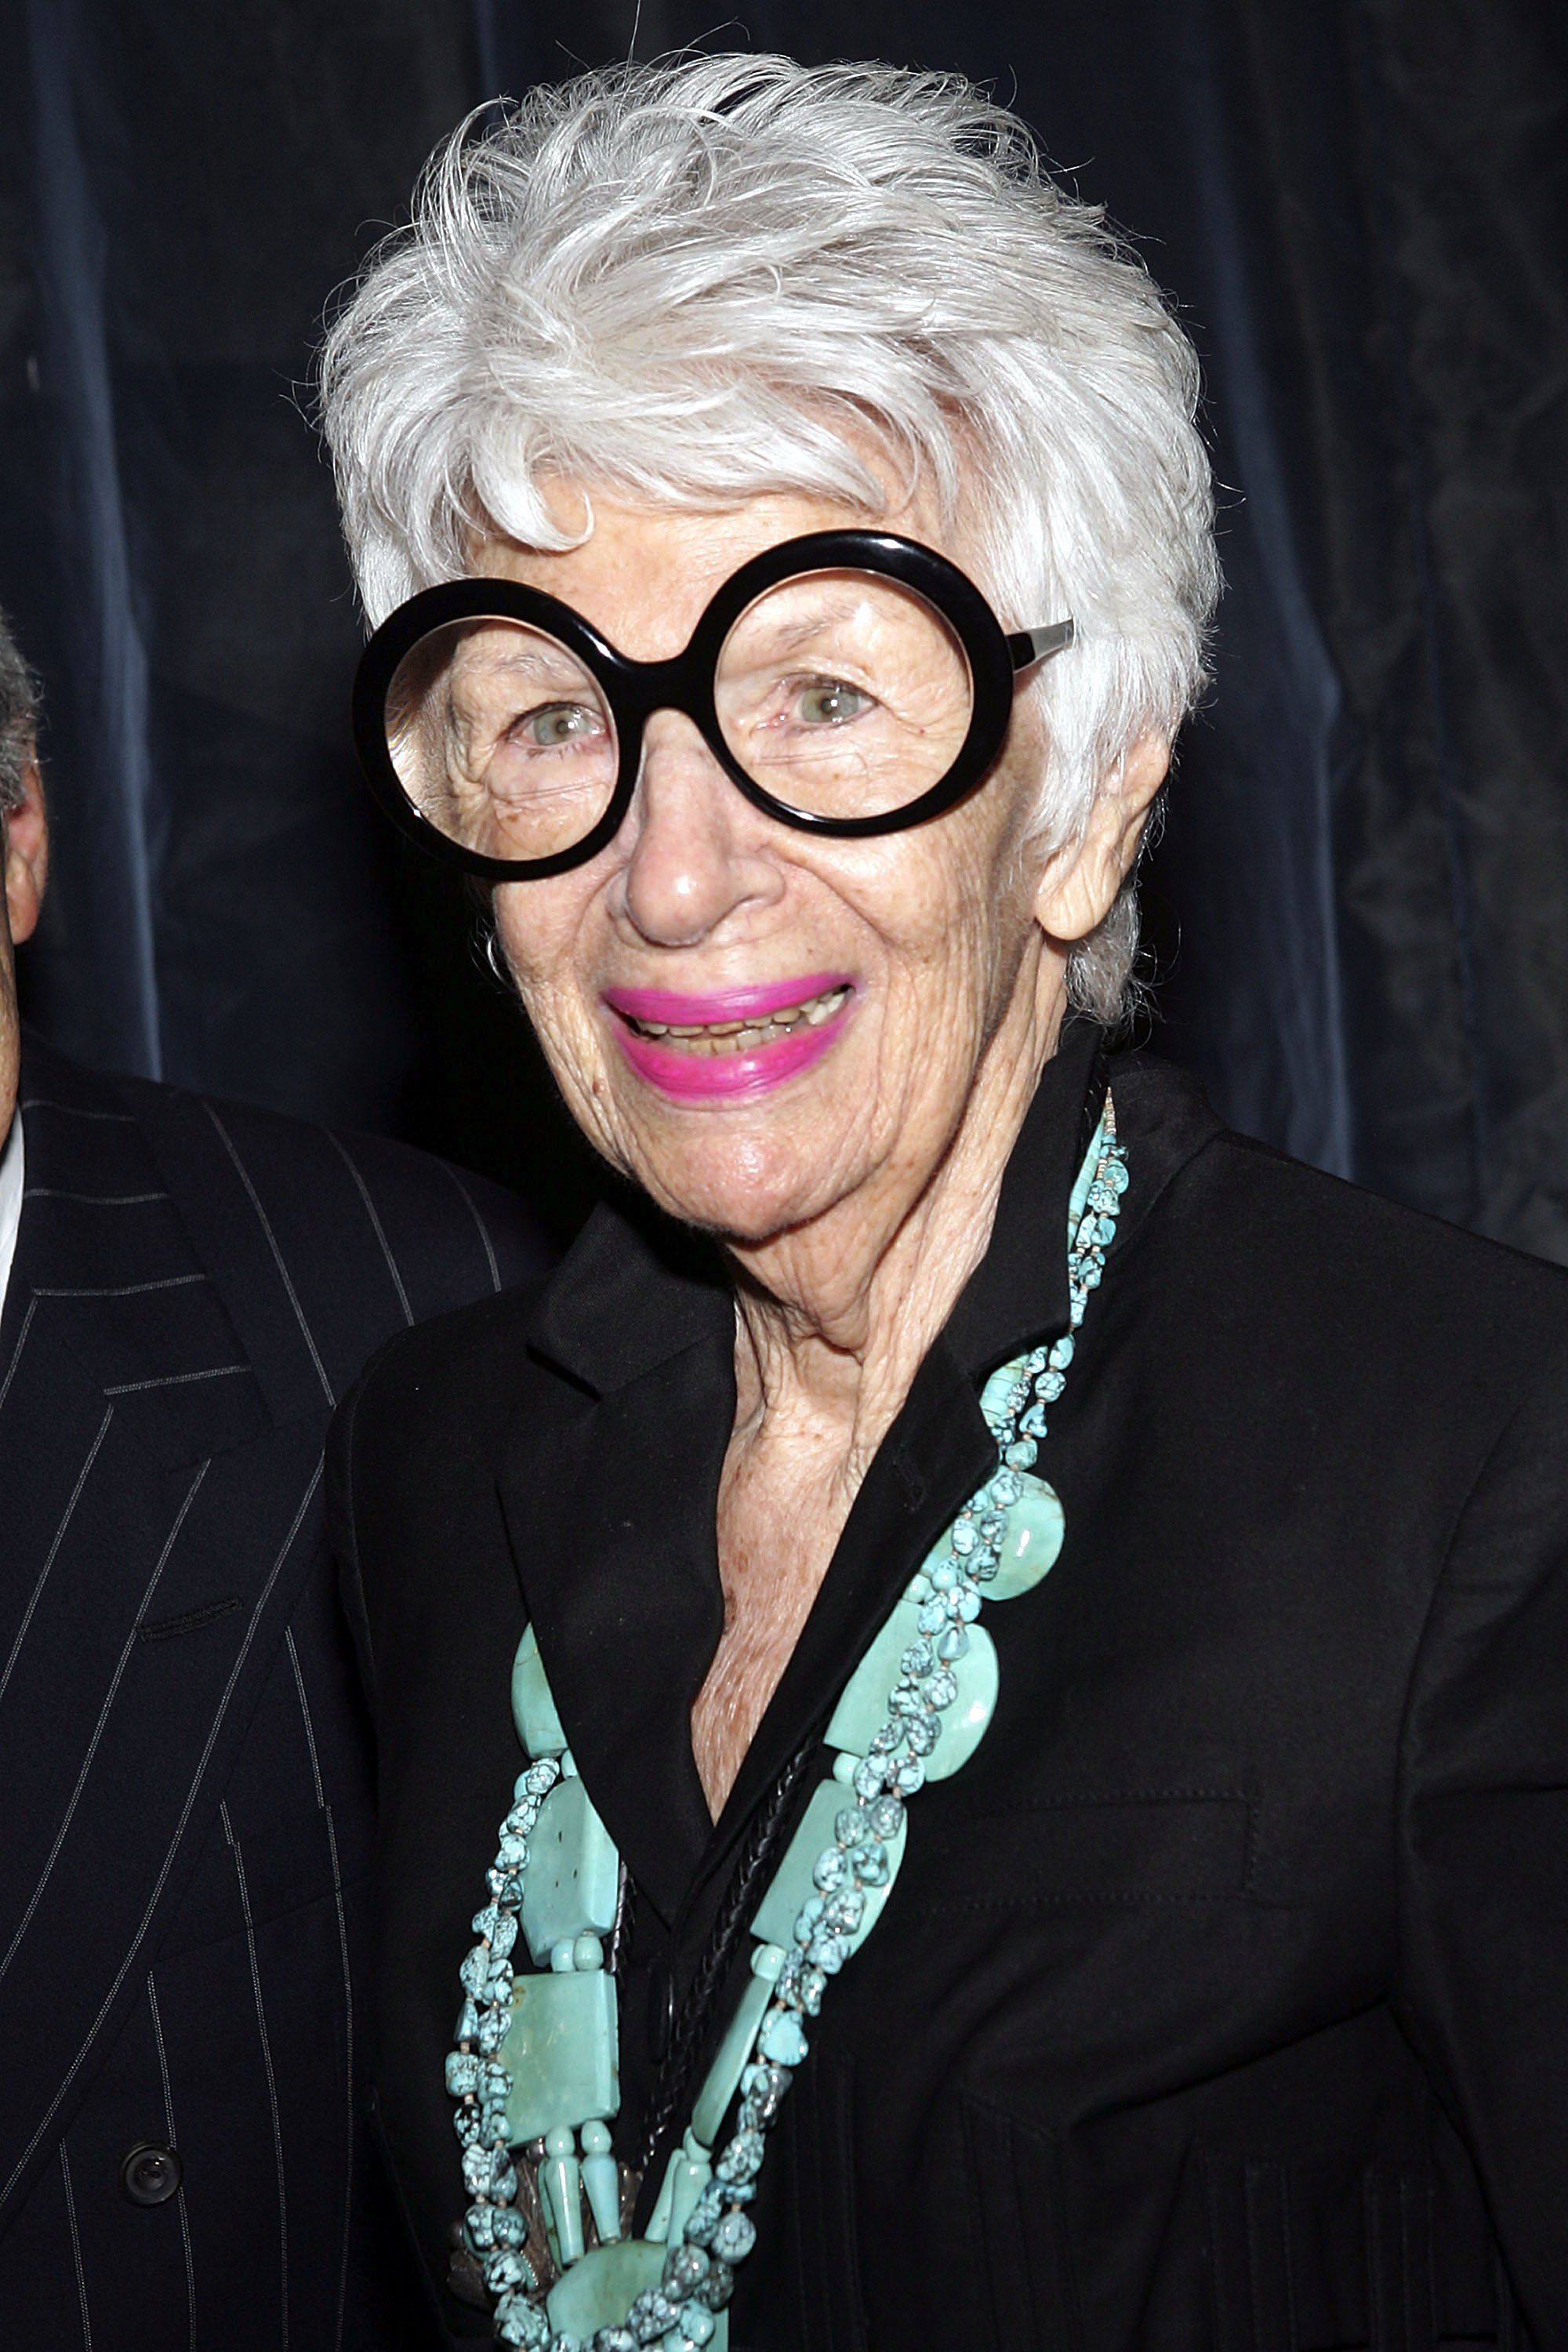 NEW YORK - SEPTEMBER 06: Designer Iris Apfel attends Jean Paul Gaultier's 30th anniversary and boutique opening at Bergdorf Goodman, September 6, 2006 in New York City.  (Photo by Evan Agostini/Getty Images)